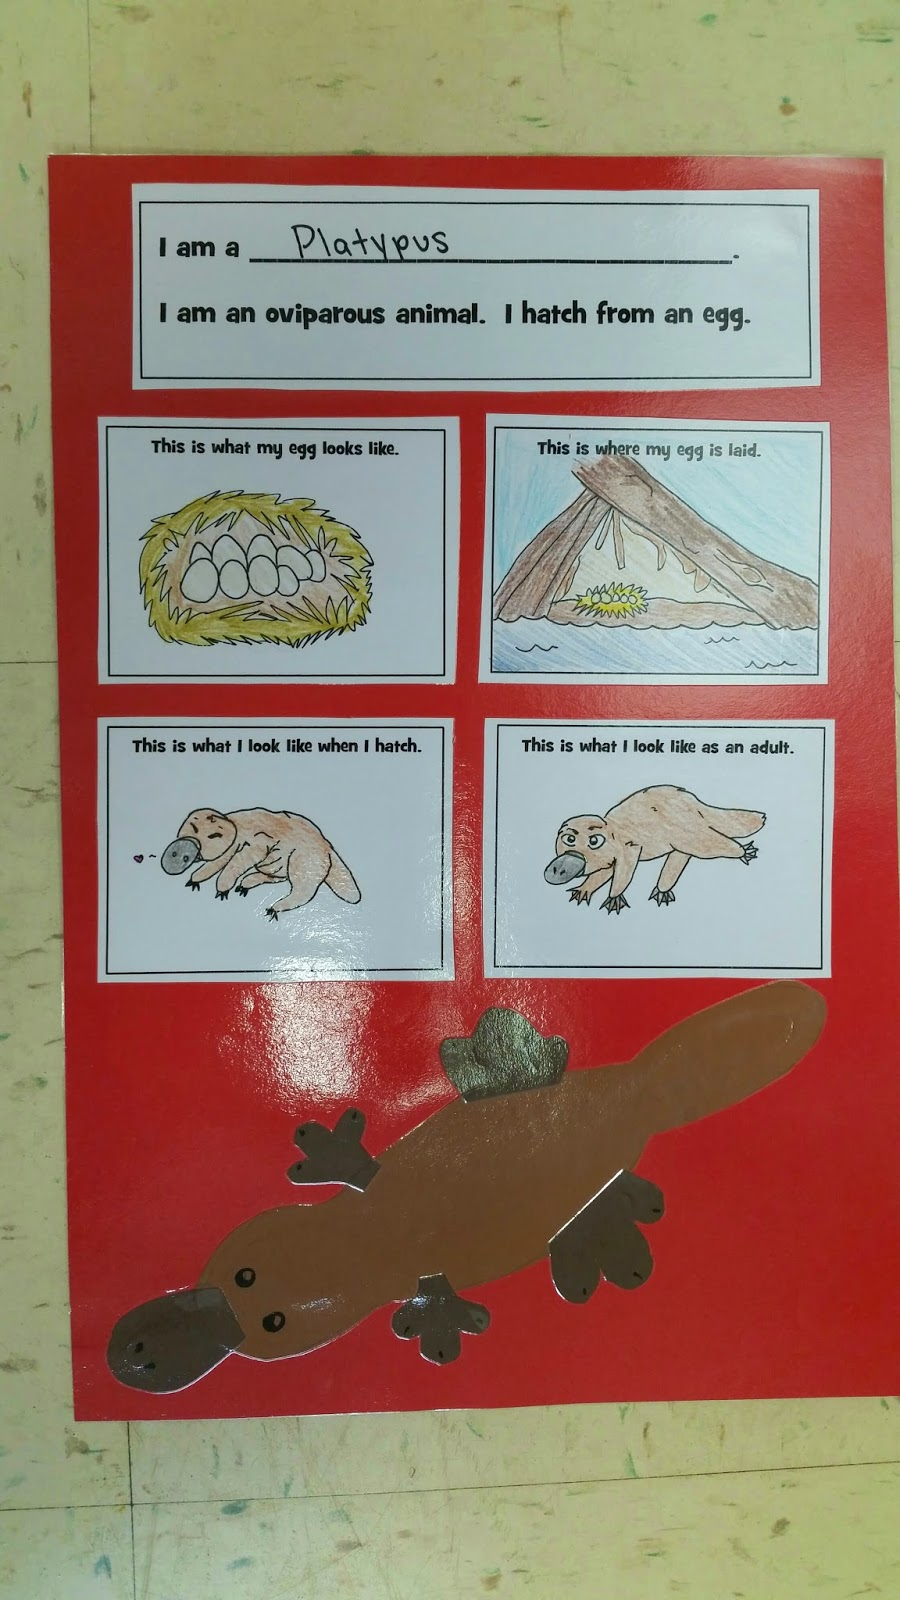 Image of: Viviparous Animals If You Teach About Oviparous Animals In Your Class And Want To Know More About This Project You Check It Out By Clicking On The Image Below Mrs Ehles Kindergarten Connections Mrs Ehles Kindergarten Connections Oviparous Animals An Egg